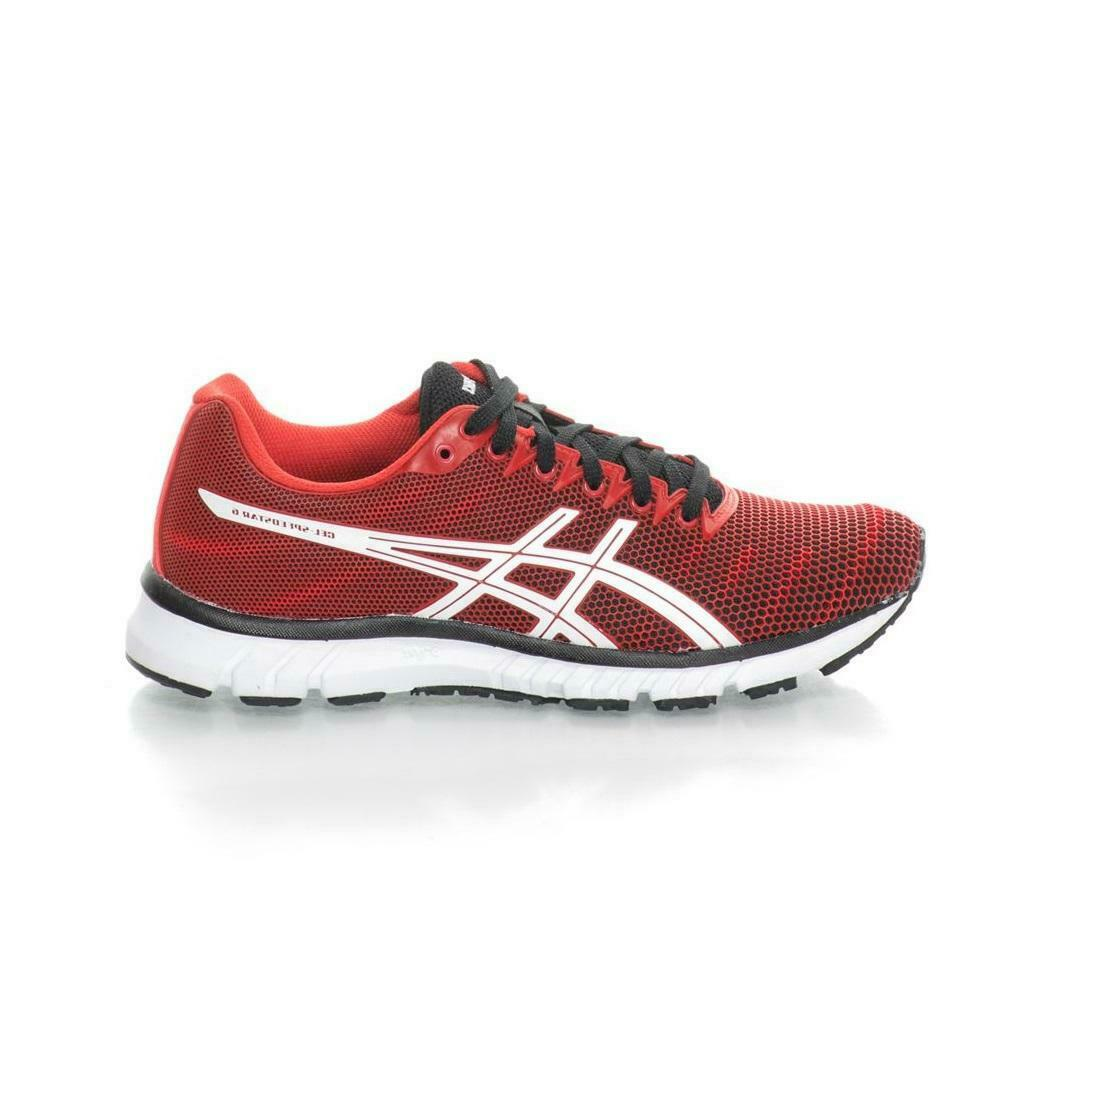 Mens ASICS GEL SPEEDSTAR 6 Running Trainers T213Q 2300